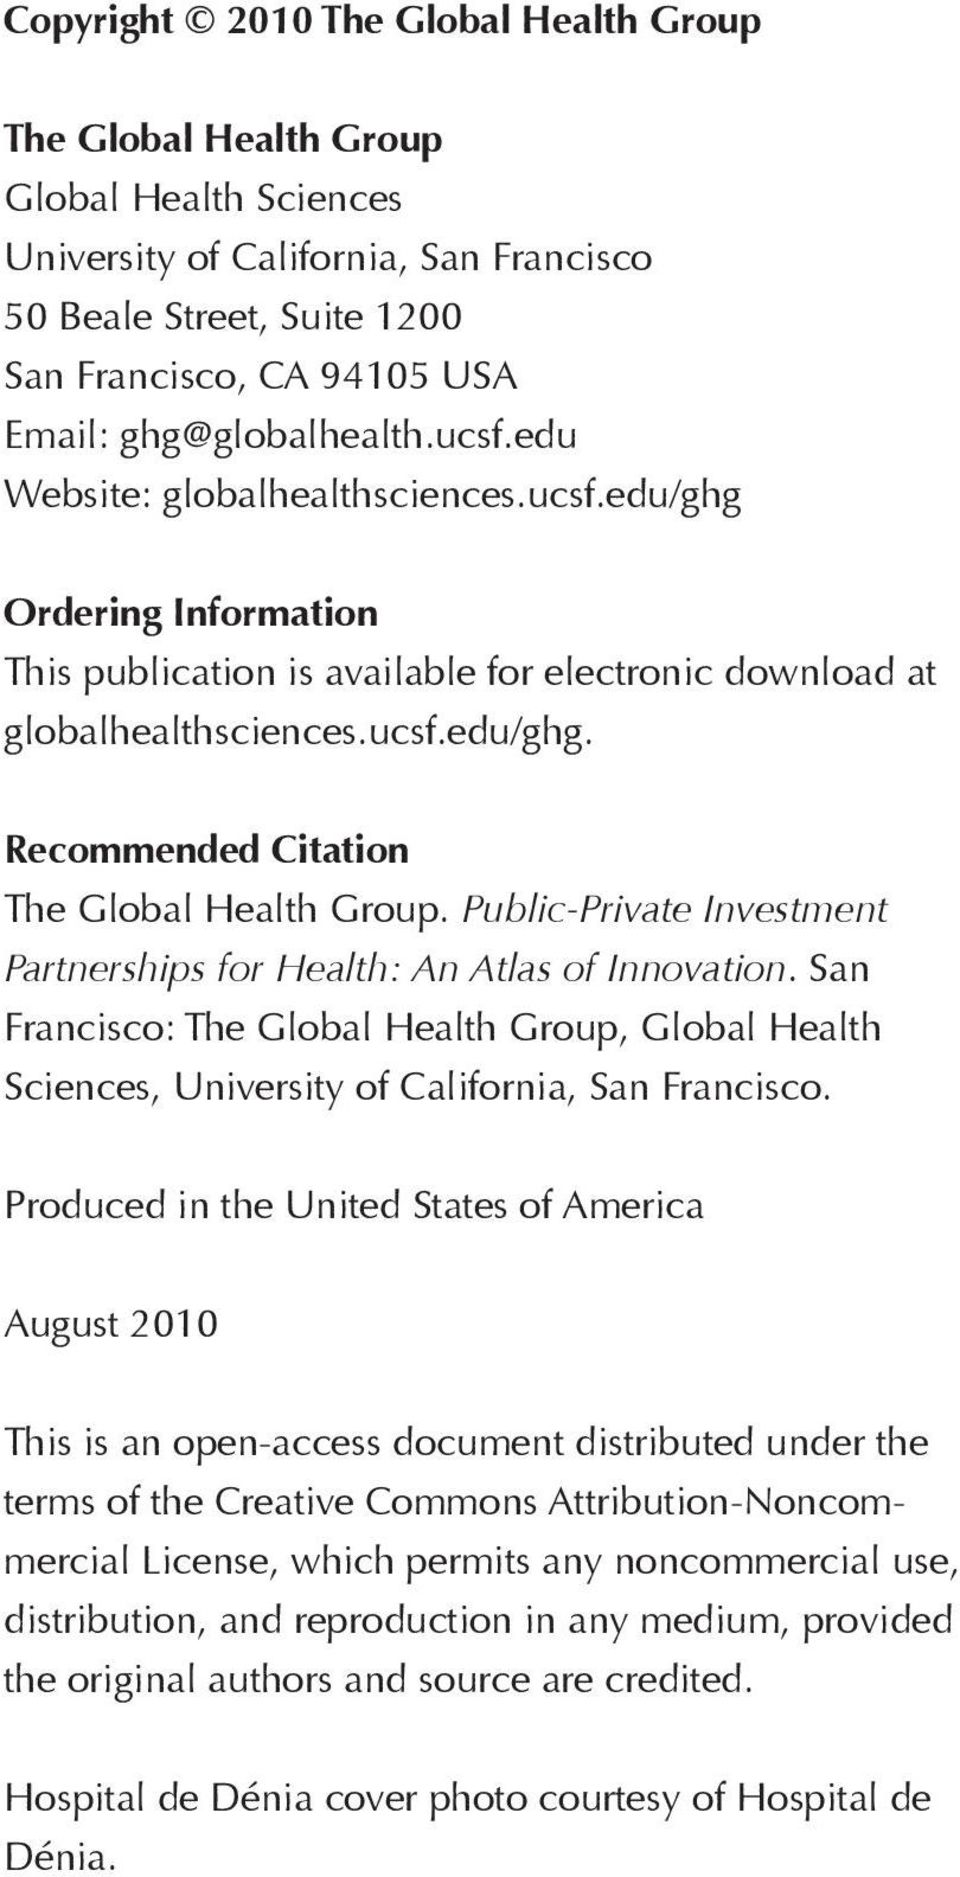 Public-Private Investment Partnerships for Health: An Atlas of Innovation. San Francisco: The Global Health Group, Global Health Sciences, University of California, San Francisco.